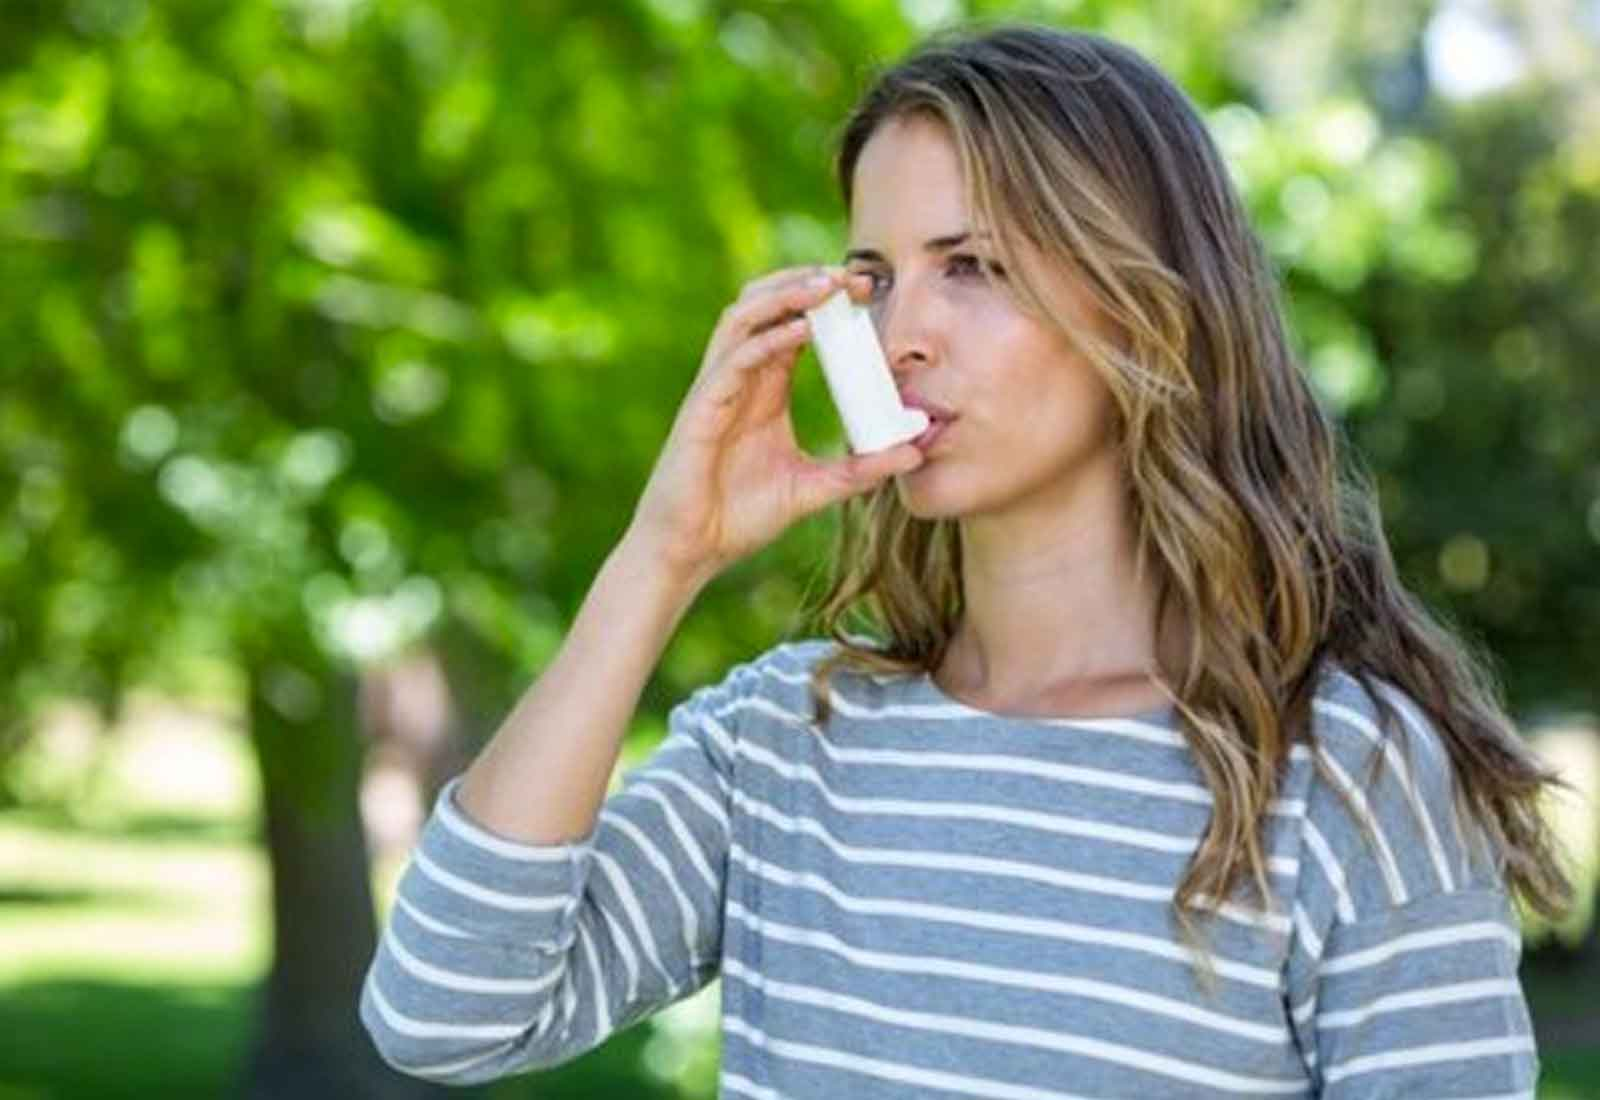 Combo inhaler protects mild asthmatics from attacks: Study